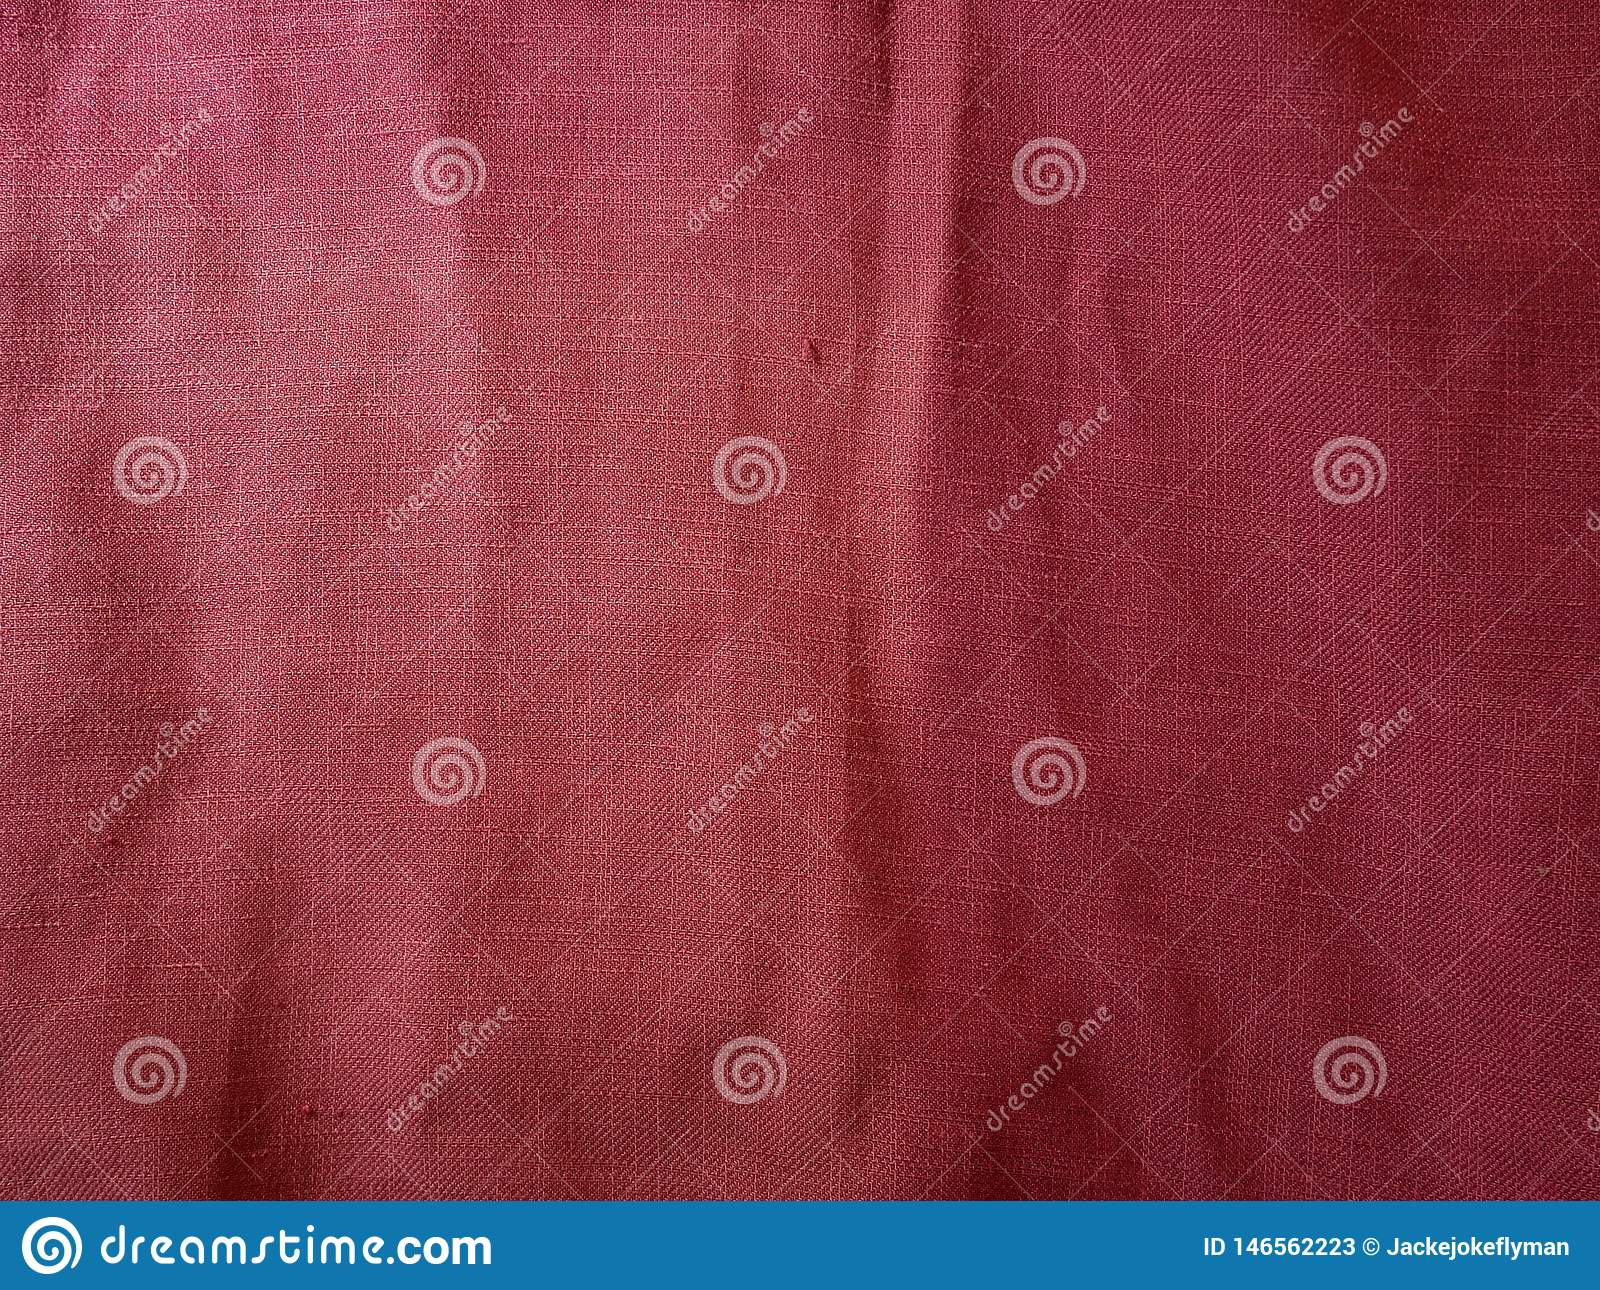 Red Cotton Fabric Texture Pastel Background Of Red Silk Texture Stock Image Image Of Craft Black 146562223